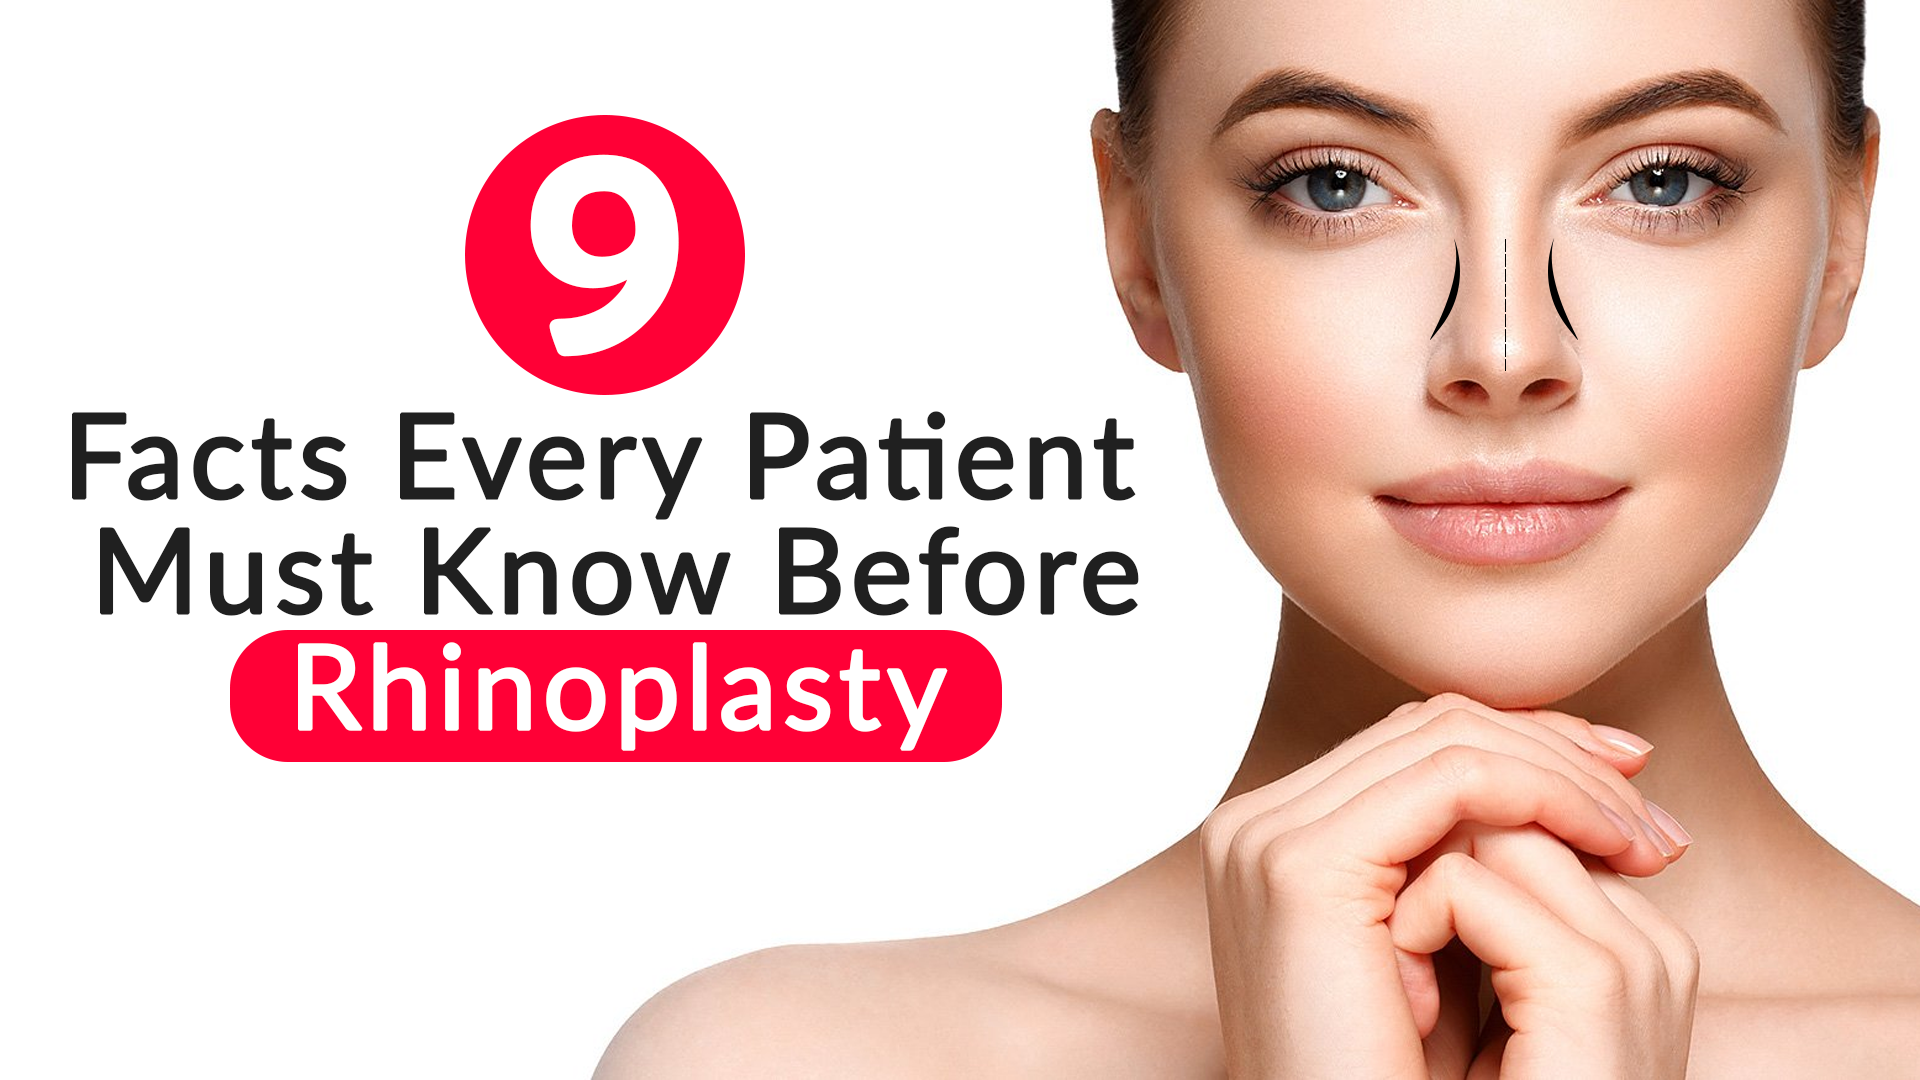 9 Facts Every Patient Must Know Before Rhinoplasty Blog Care Well Medical Centre